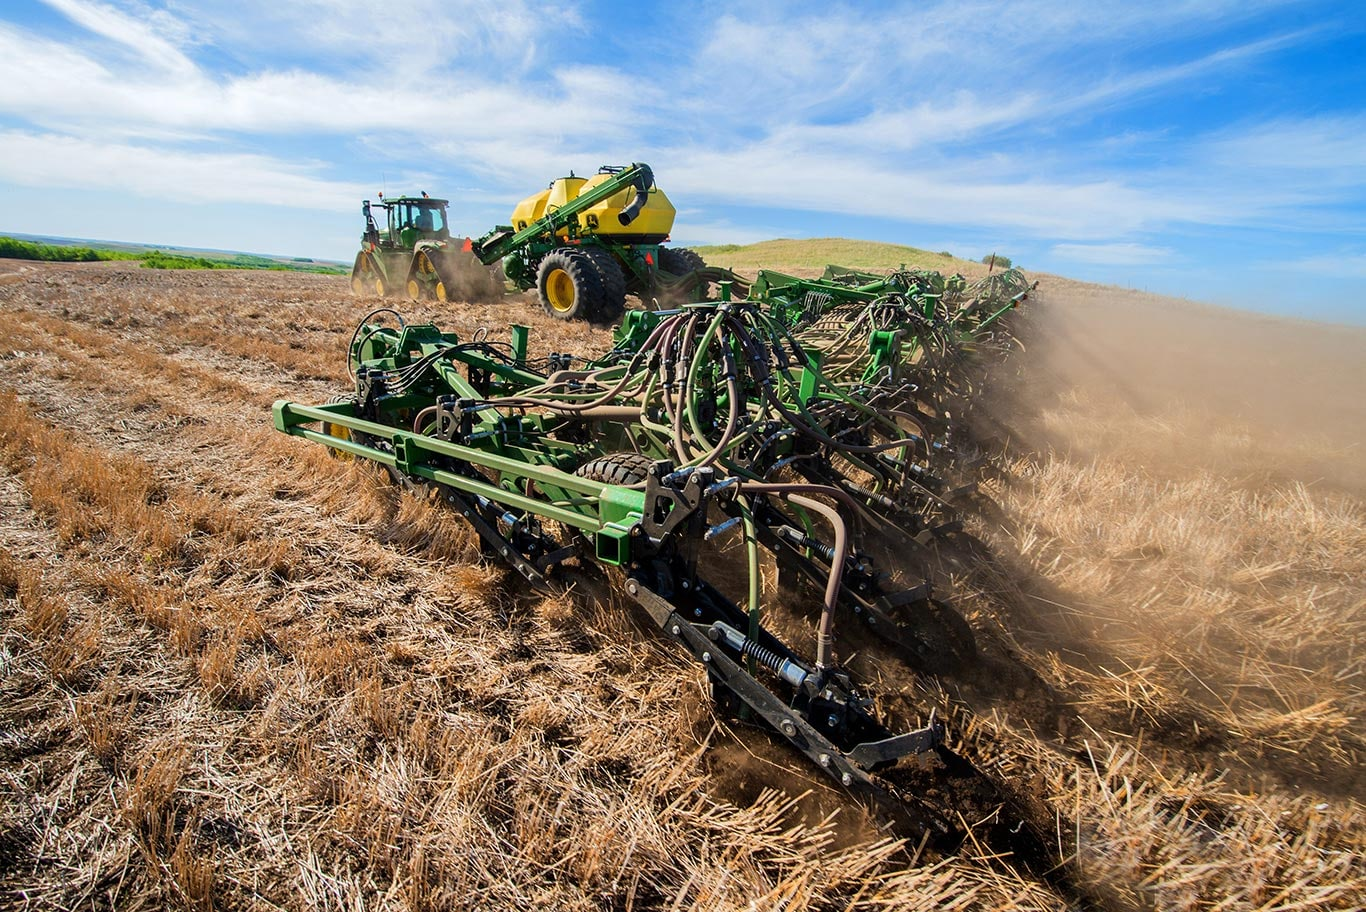 The John Deere 1870 air seeder working in a brown field